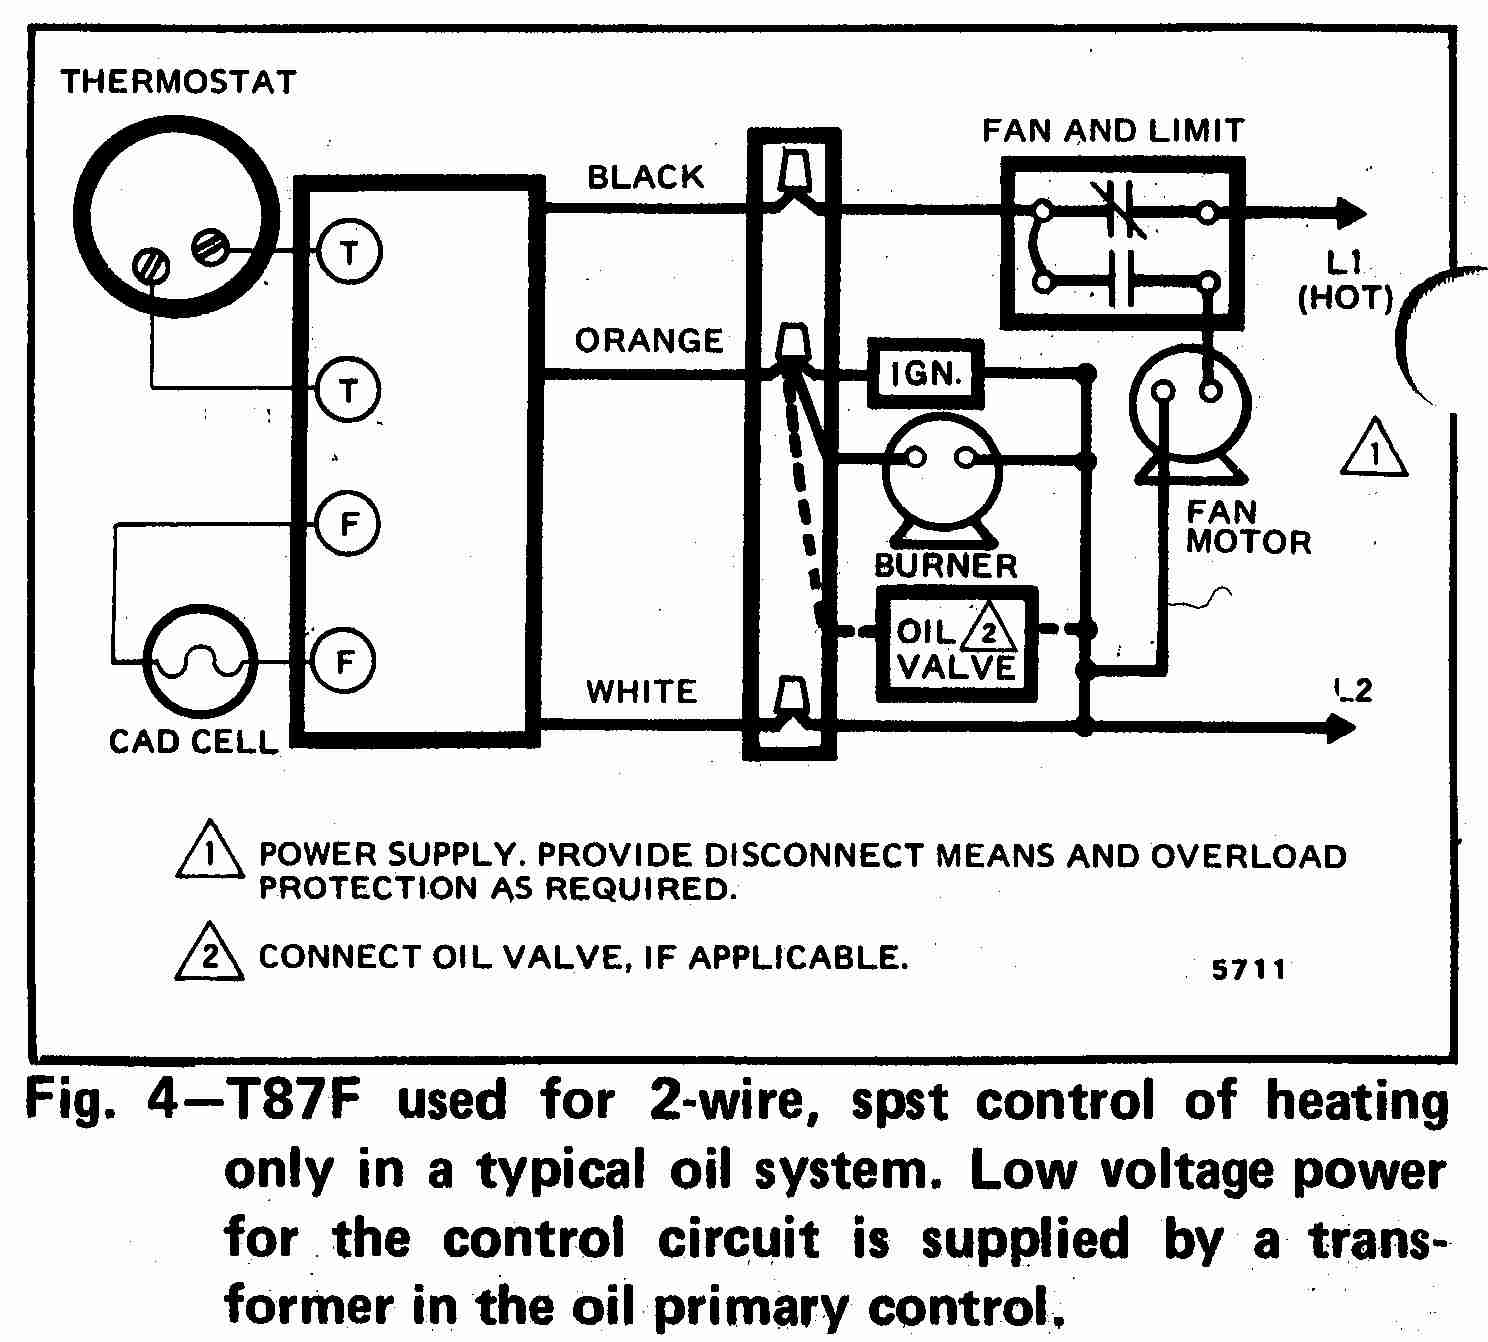 TT_T87F_0002_2W_DJF room thermostat wiring diagrams for hvac systems hvac wiring diagrams at gsmportal.co